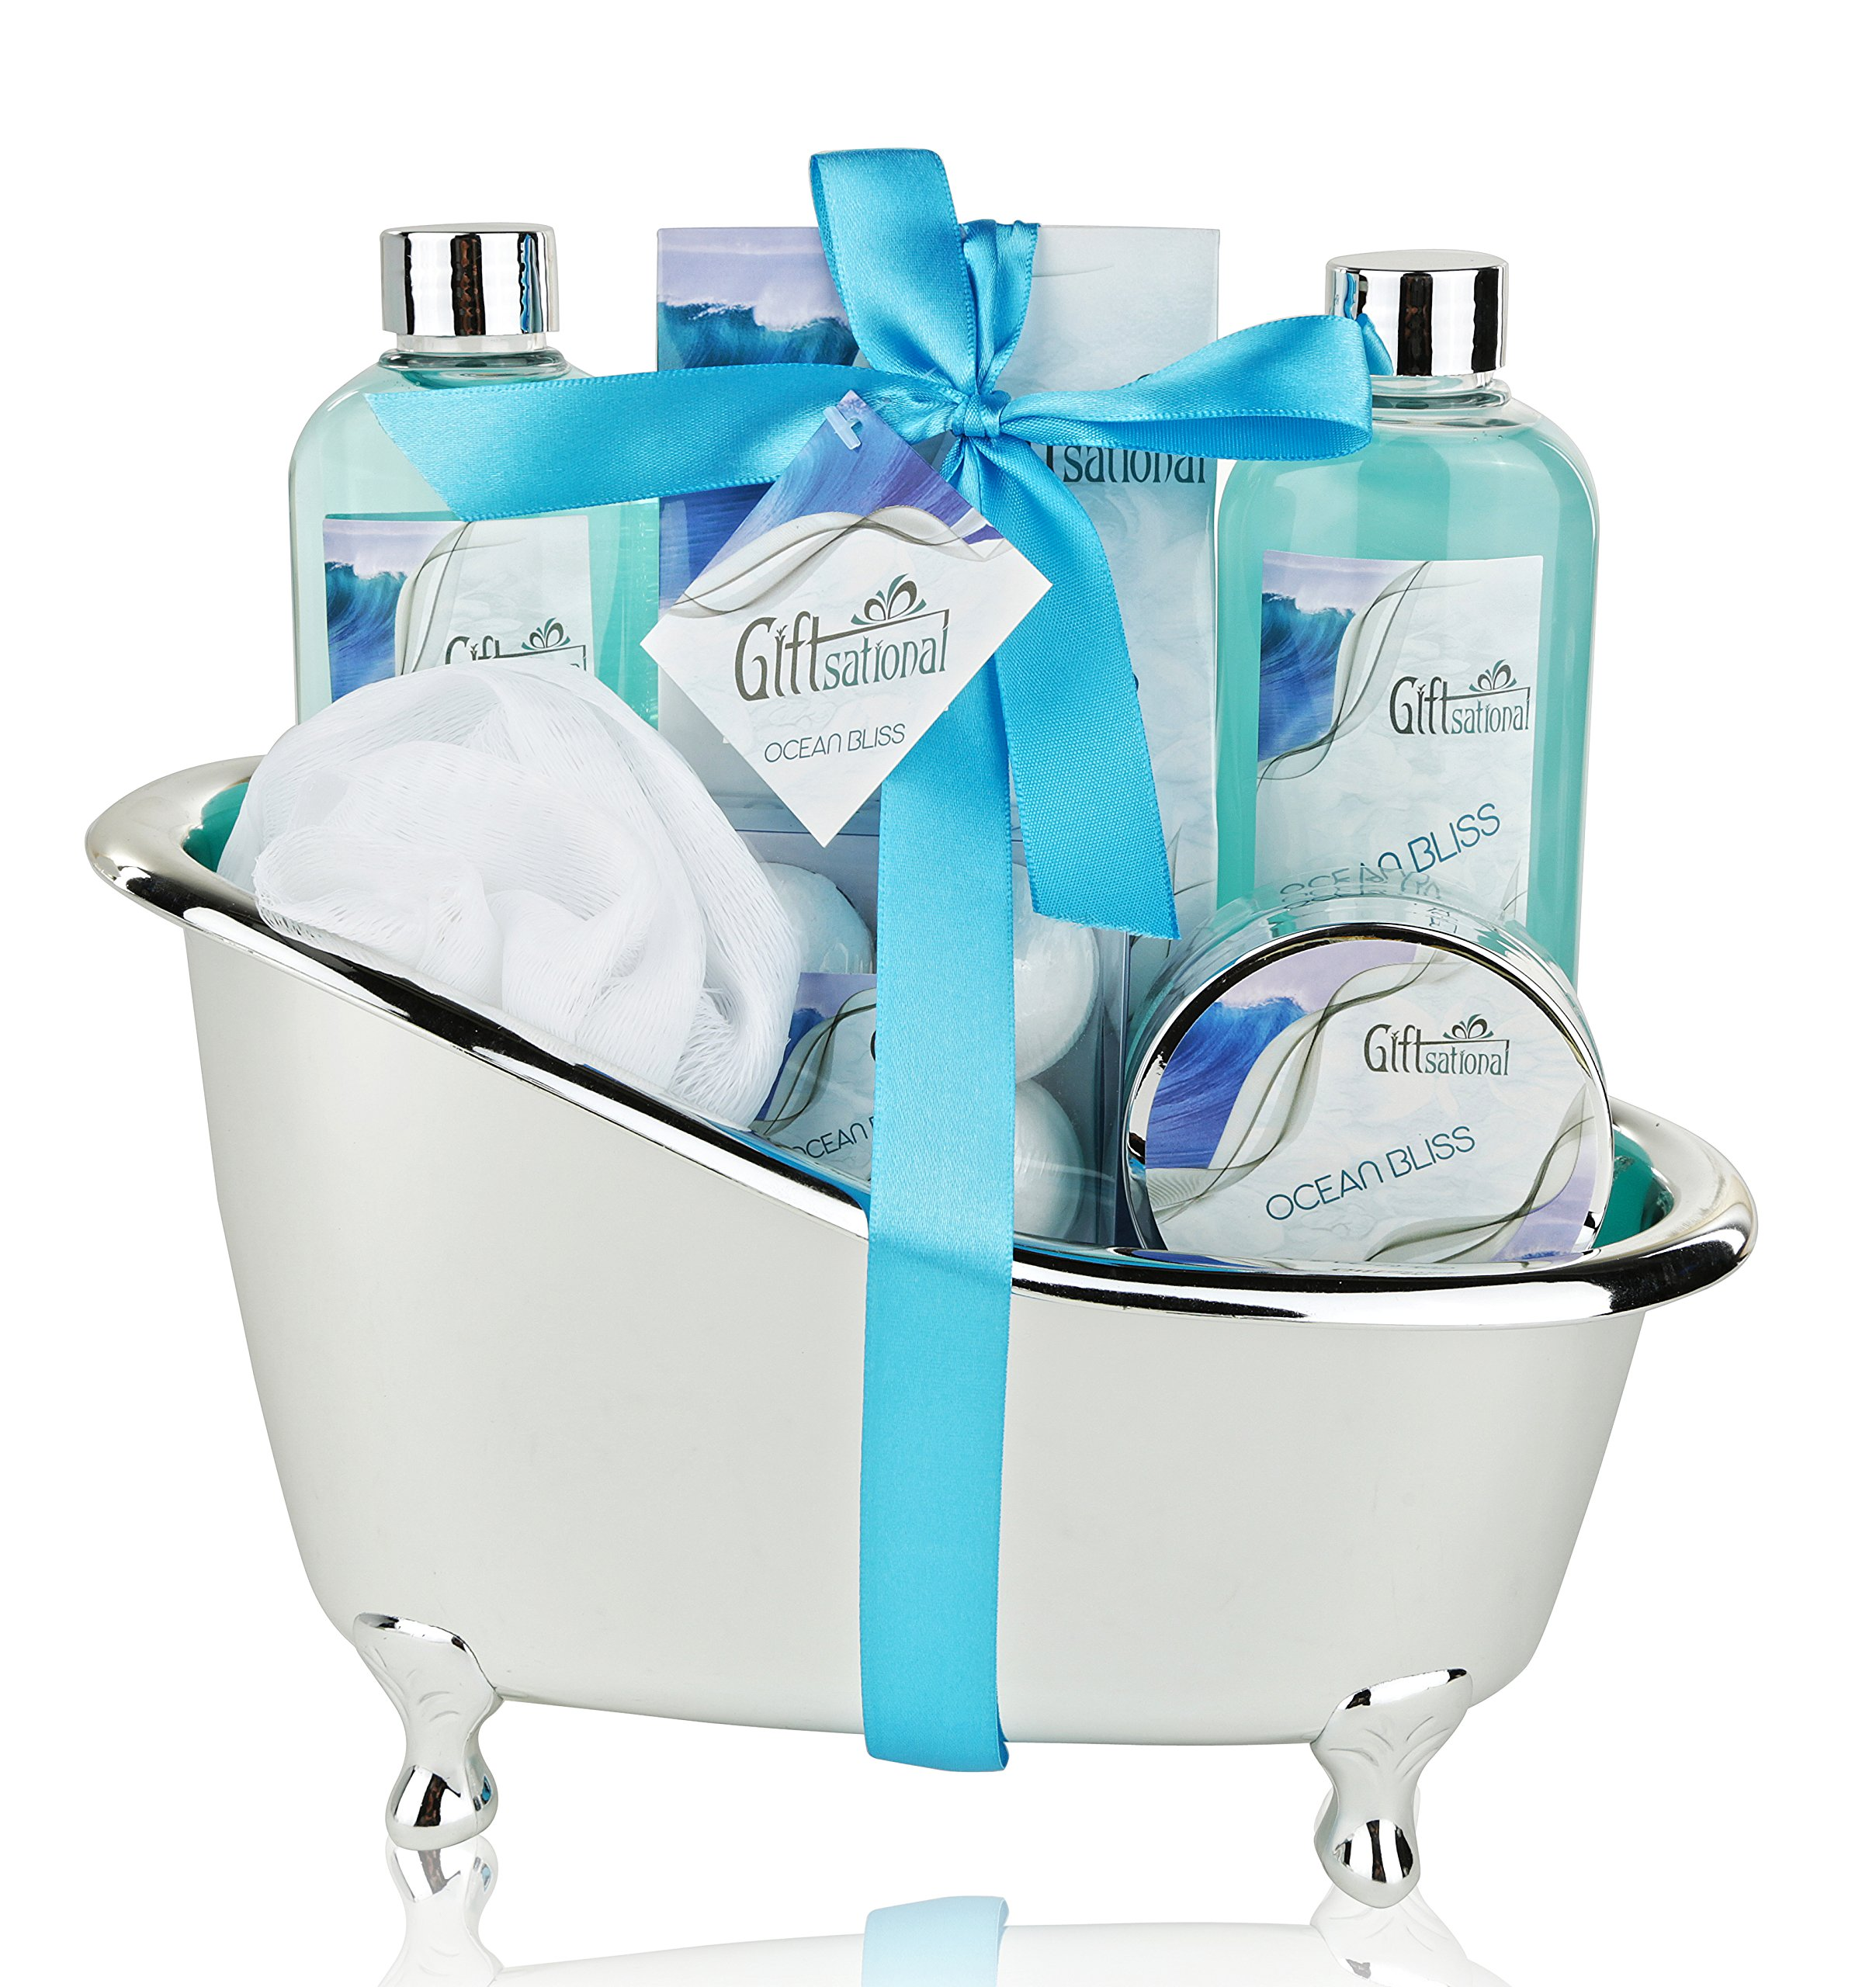 Spa Gift Basket with Refreshing Ocean Bliss Fragrance - Best Mother's Day, Wedding, Birthday, Anniversary Gift for Women -Bath Gift Set Includes Shower Gel Bubble Bath, Bath Salts Bath Bombs and More!